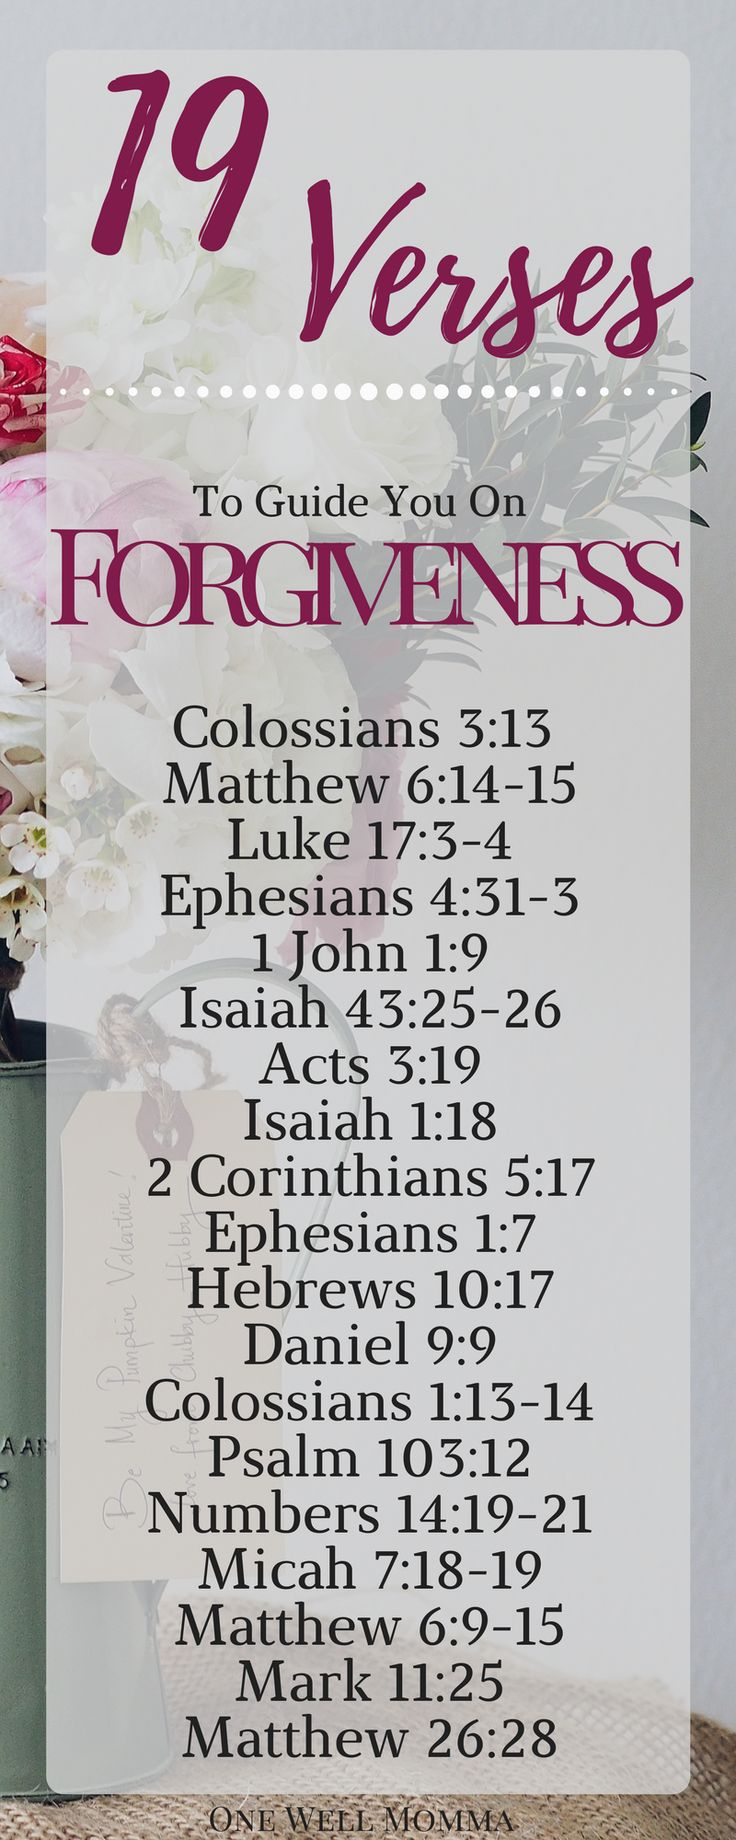 Do you feel like someone has done you wrong? Are you holding on to #anger, #hurt, or #bitterness? Check out these  #bibleverses on #forgiveness    to help you #heal by learning to #forgive #Bible #Faith #spiritualgrowth #godisgood #Scripture #biblestudy #heartache #depression #hate #spiritualhealth #mentalhealth  #LetGo #Bebetter